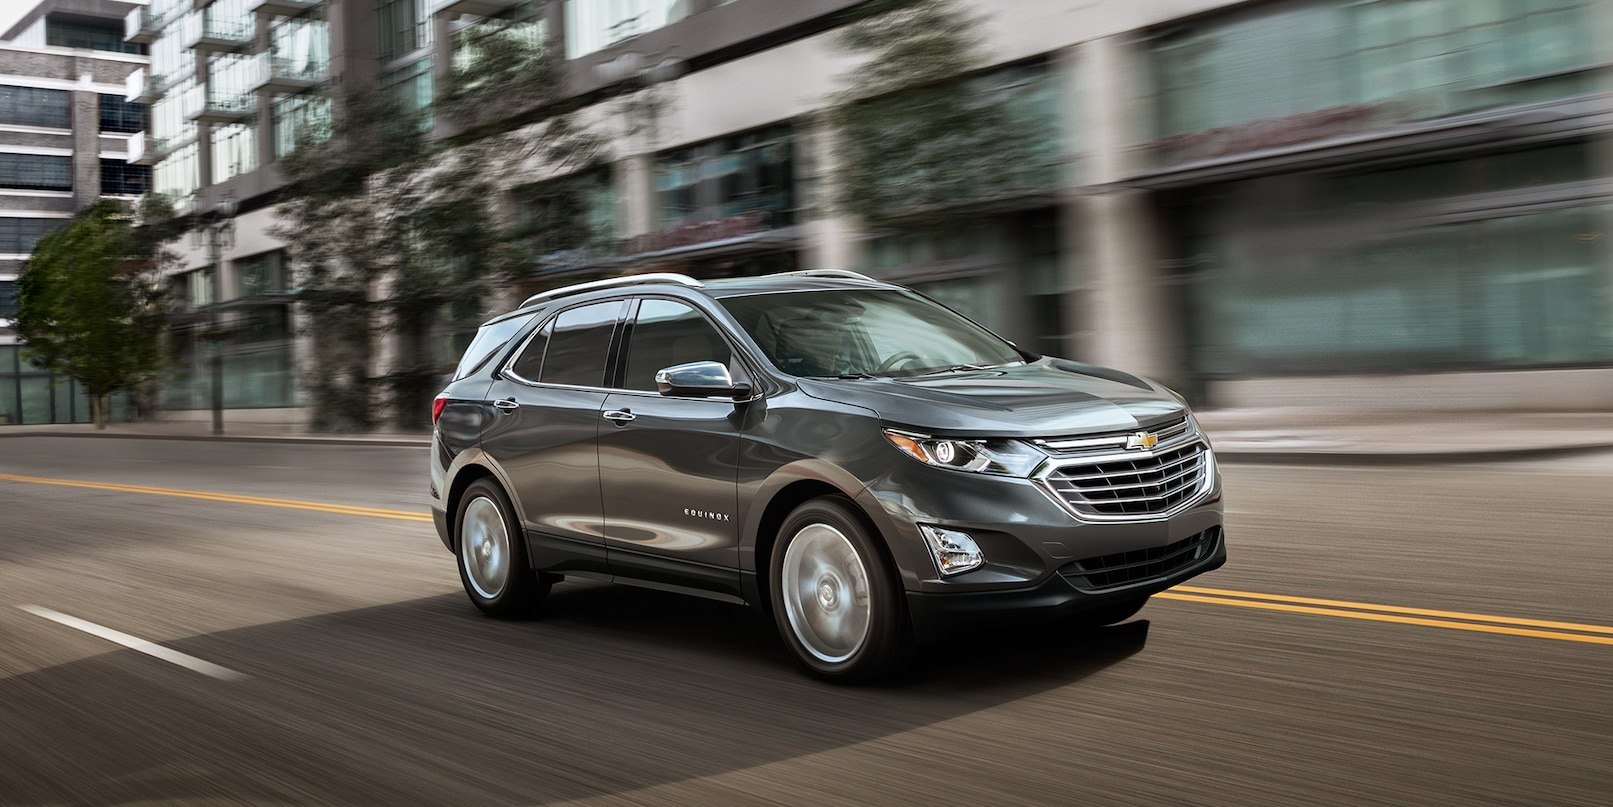 2018 Chevrolet Equinox for Sale near Liberty, MO